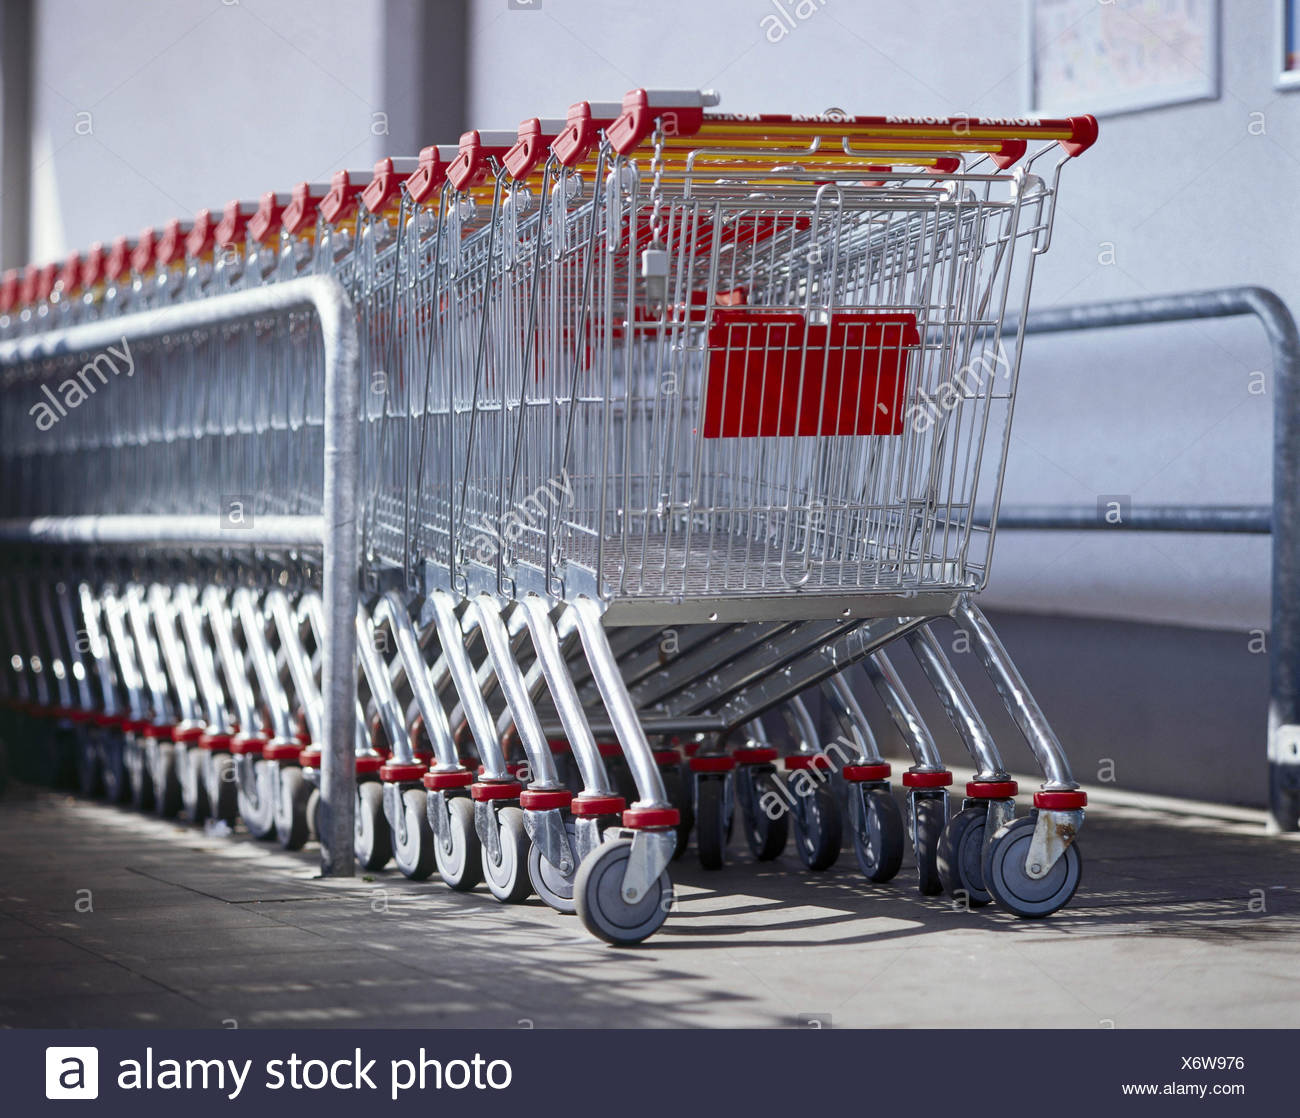 Supermarket, shopping cart, series, detail, shopping, basket goods, baskets goods, carriages, shopping baskets, one after the other, into each other, system, conception, order, ordered, purchasing, retail trade, outside - Stock Image